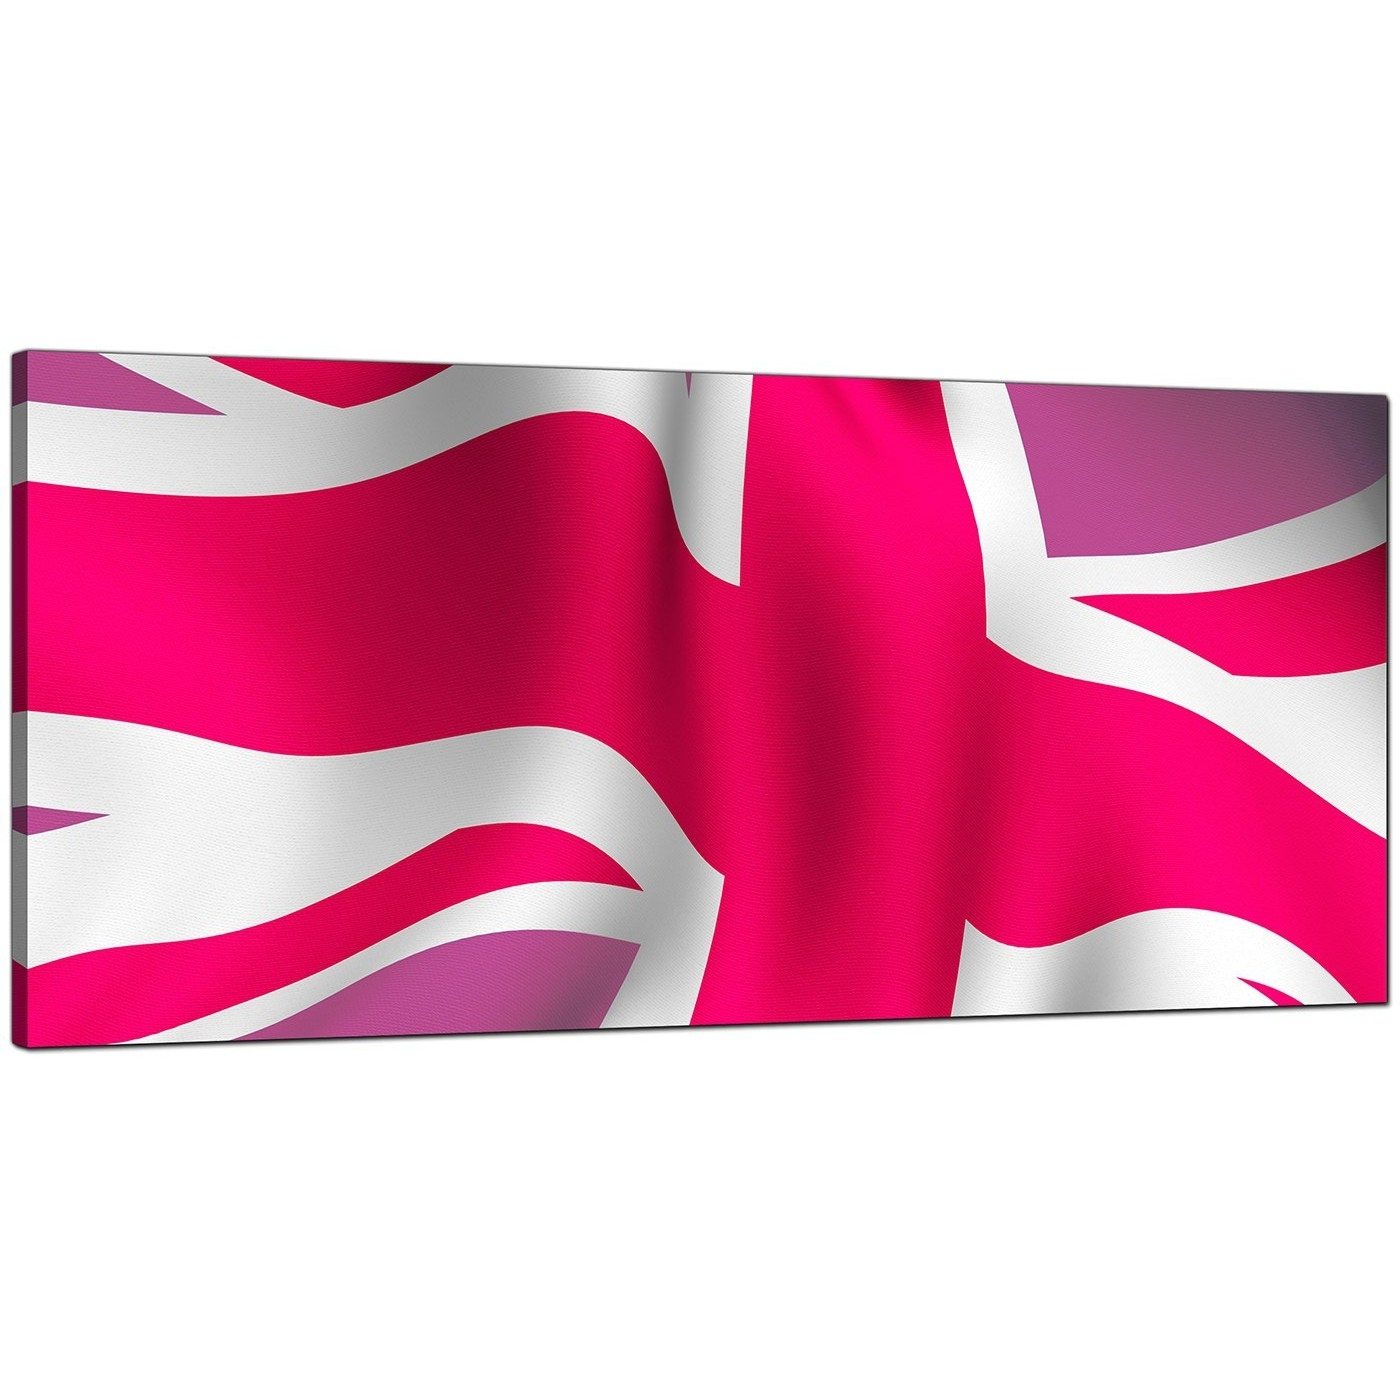 Large Pink Canvas Wall Art Of The Union Jack - 1012 with regard to Most Popular Union Jack Canvas Wall Art